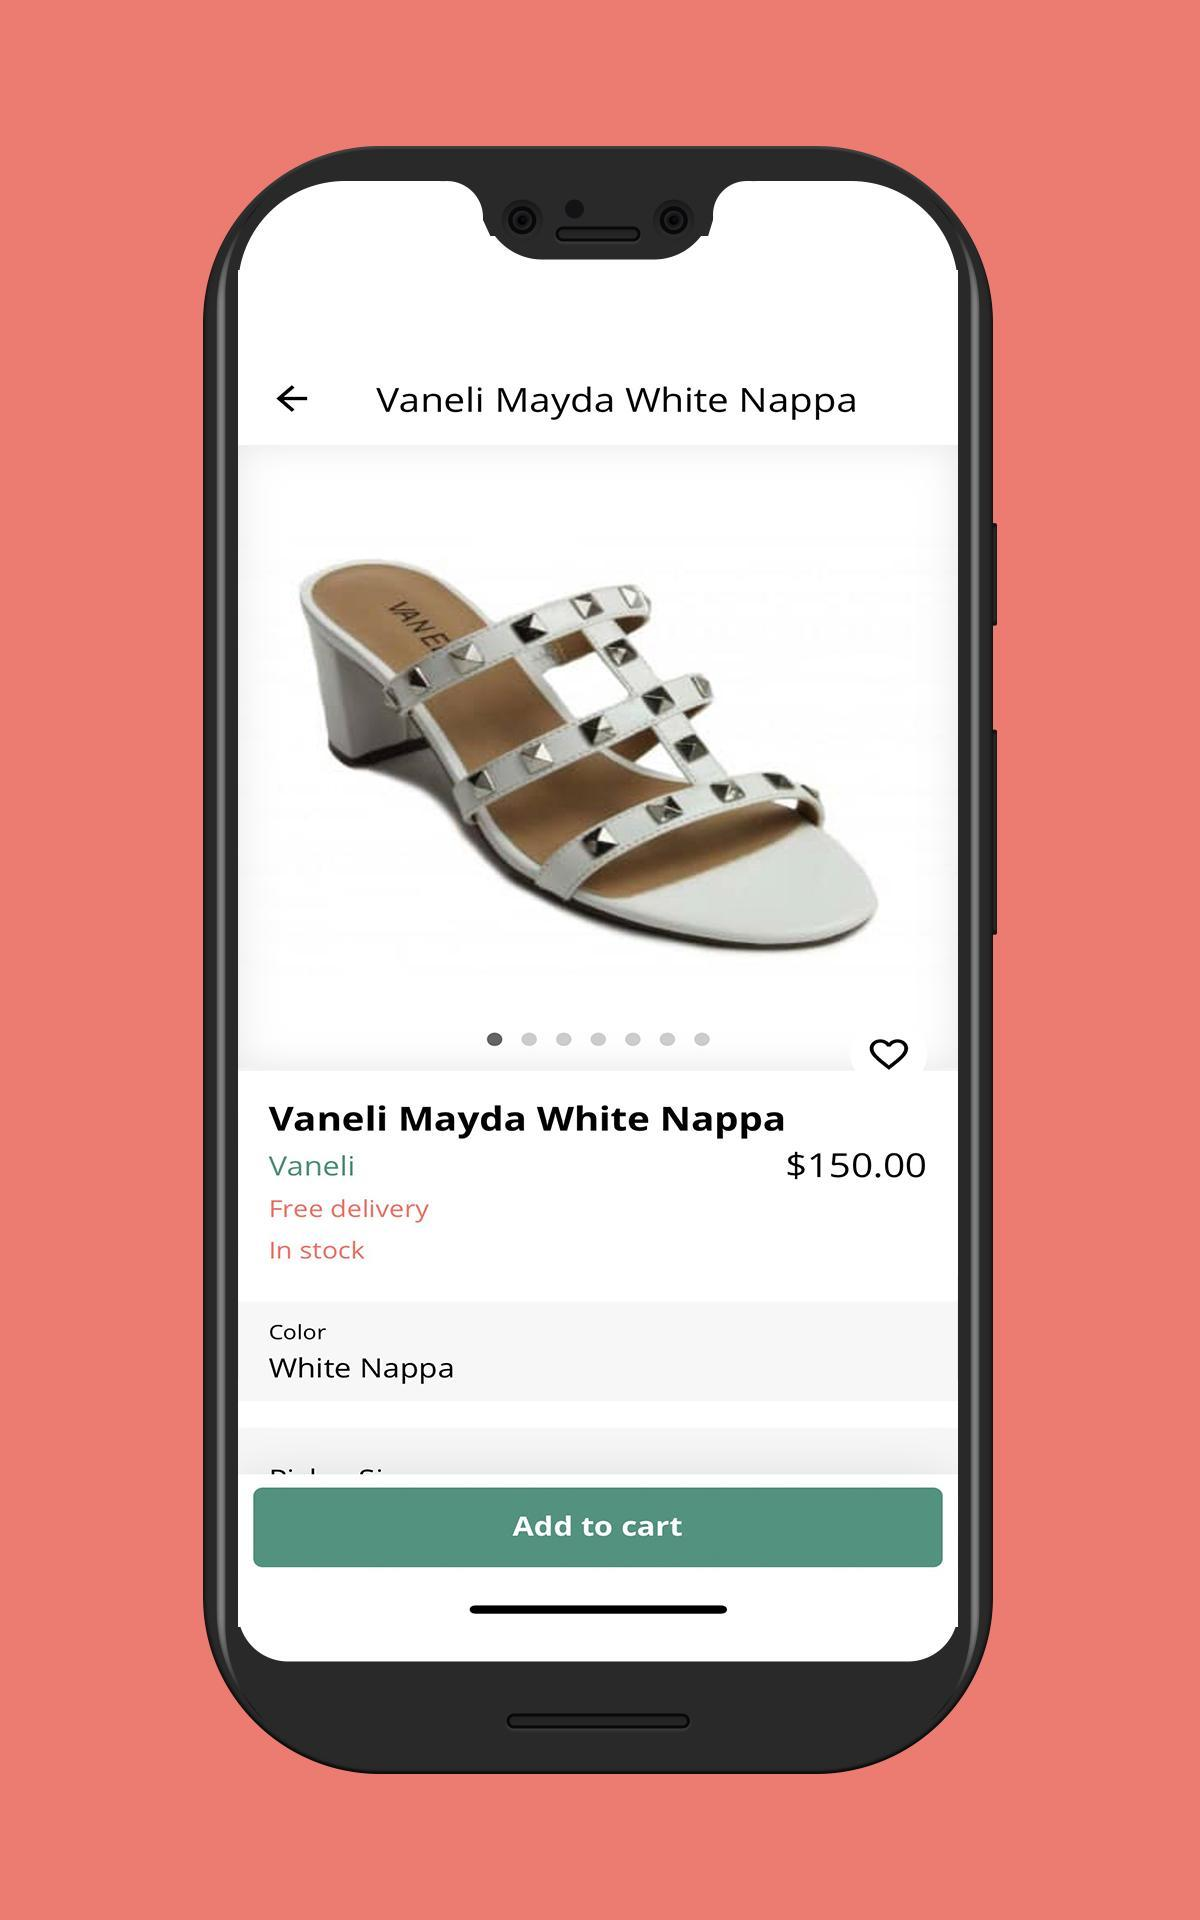 Marmi Shoes For Android Apk Download Marmi shoes is located in west palm beach city of florida state. apkpure com